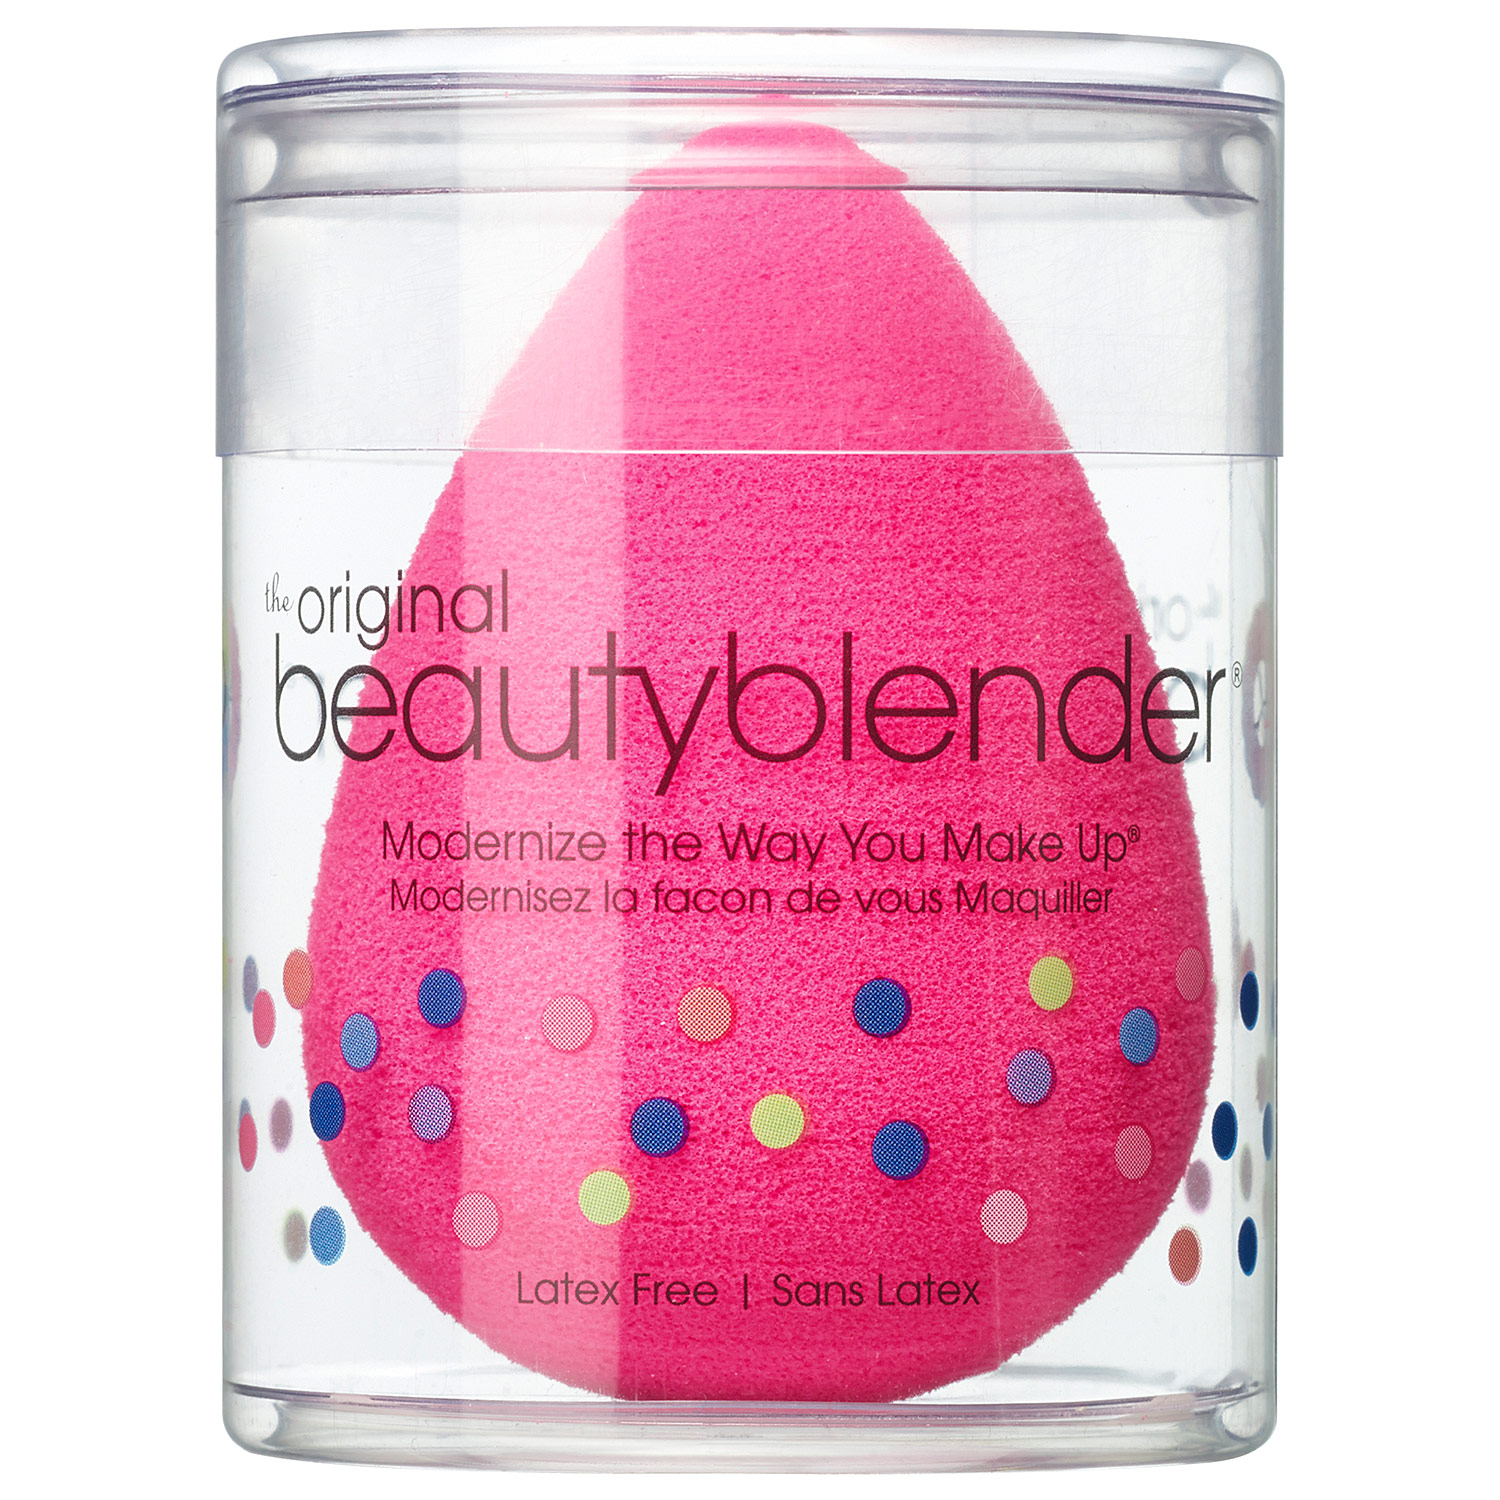 beautyblenderpinkbox